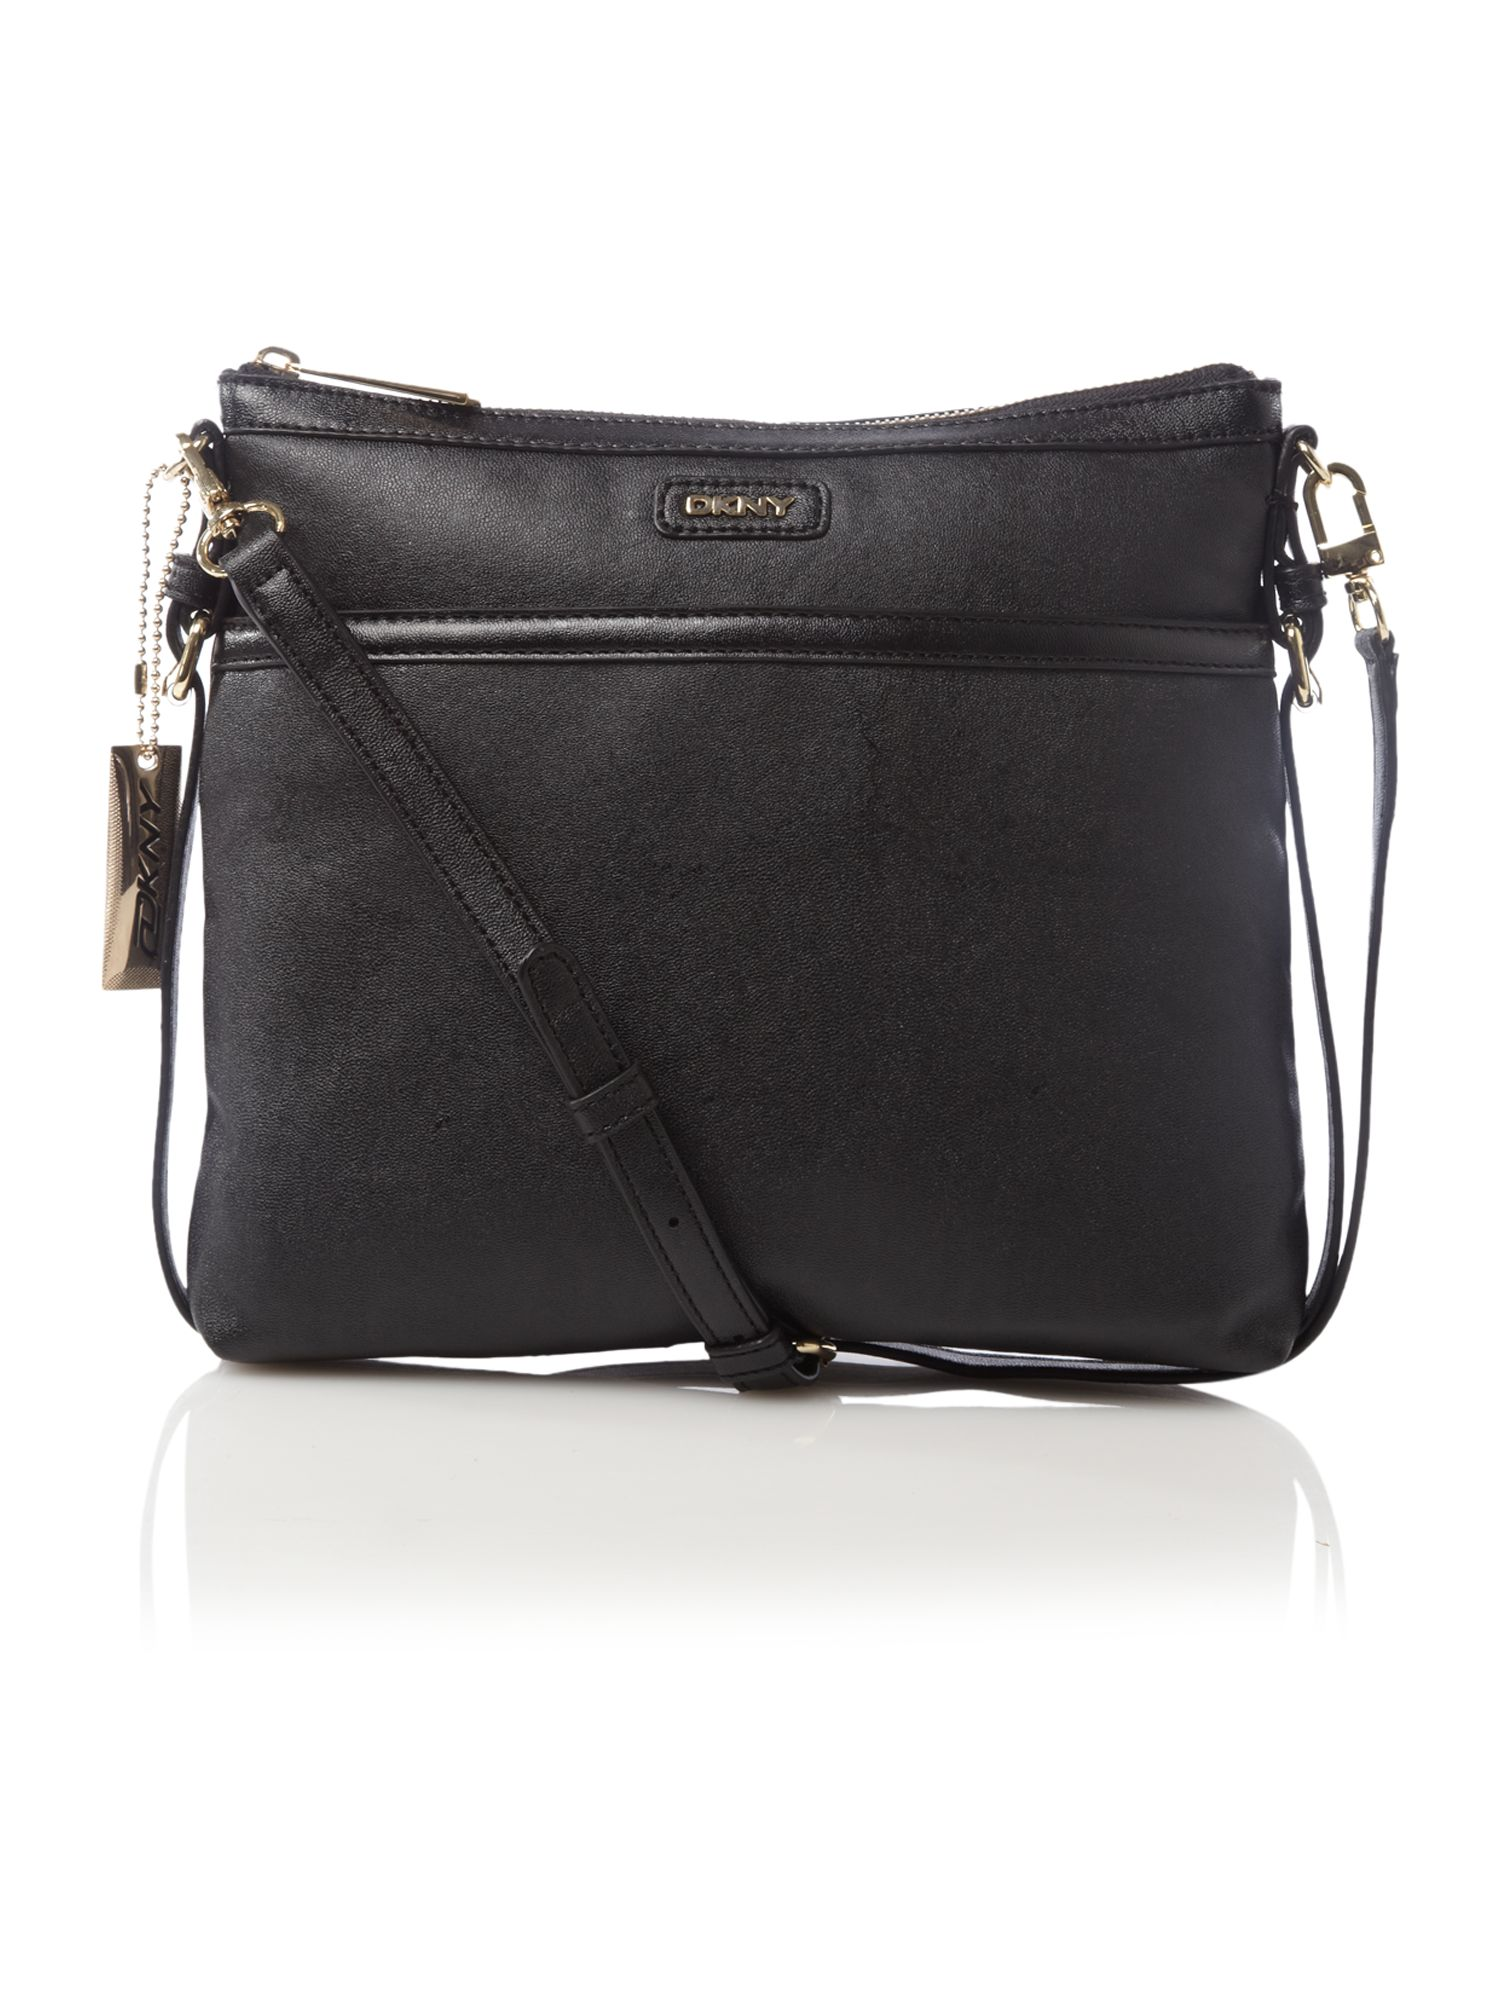 dkny vintage crossbody bag in black lyst